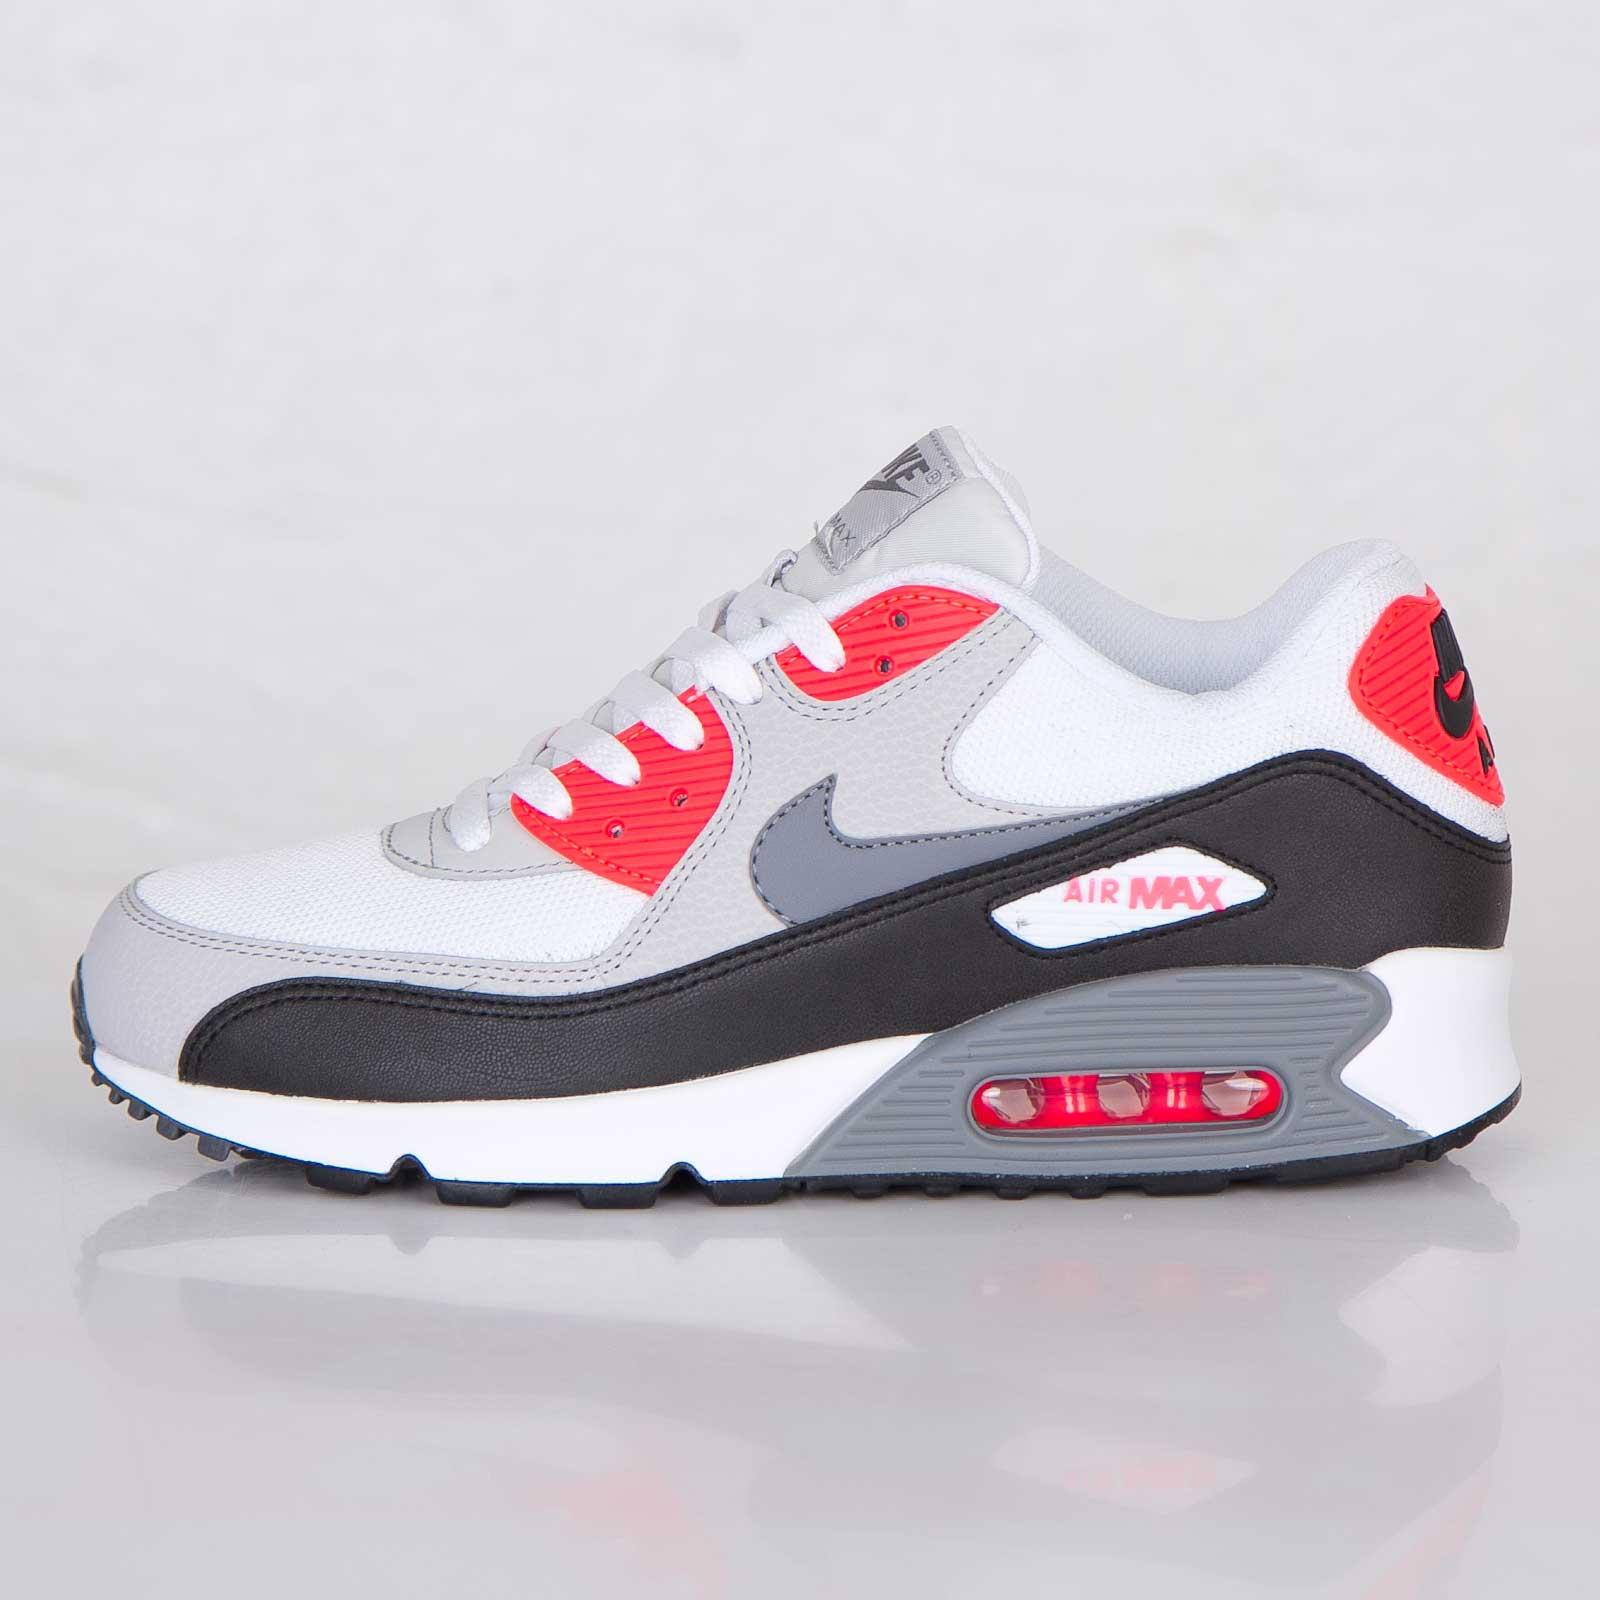 reputable site 332d7 84e10 air max 90 white red black